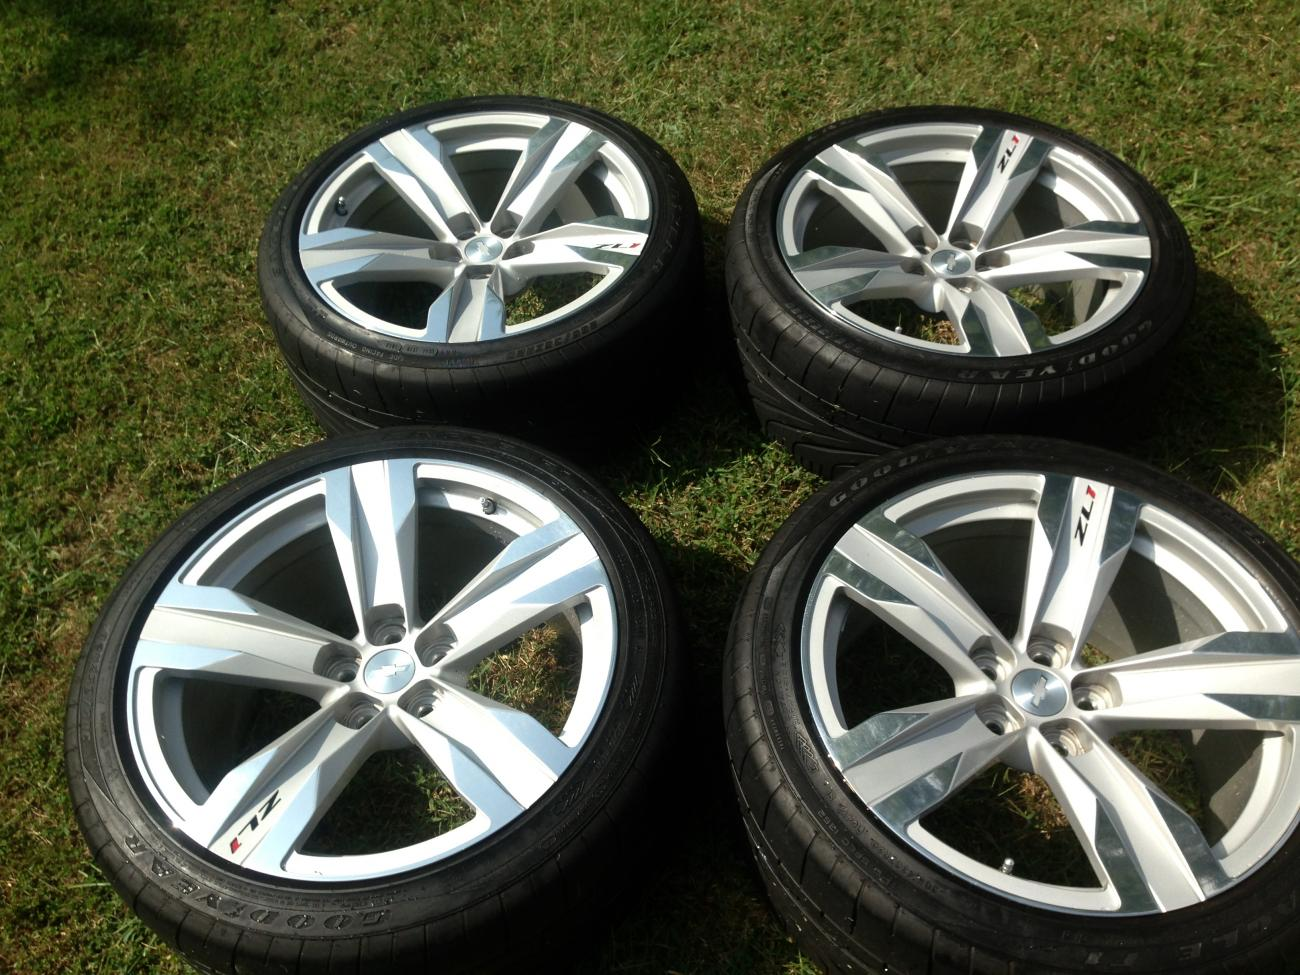 For Sale Zl1 Oem 5 Spoke Aluminum Wheels And Tires